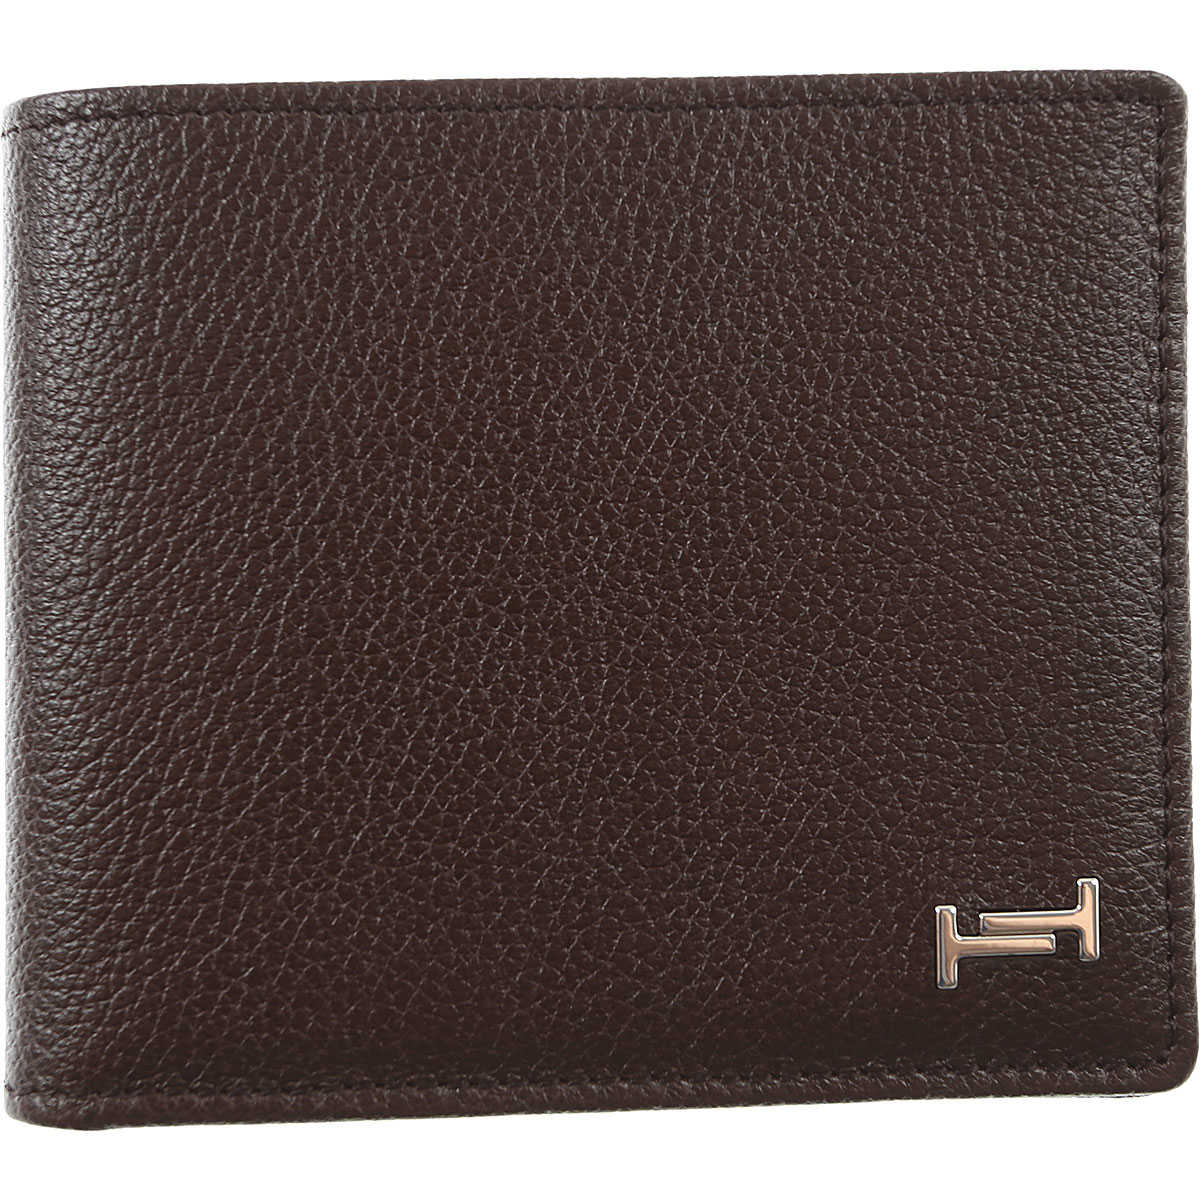 Tods Mens Wallets On Sale Brown SE - GOOFASH